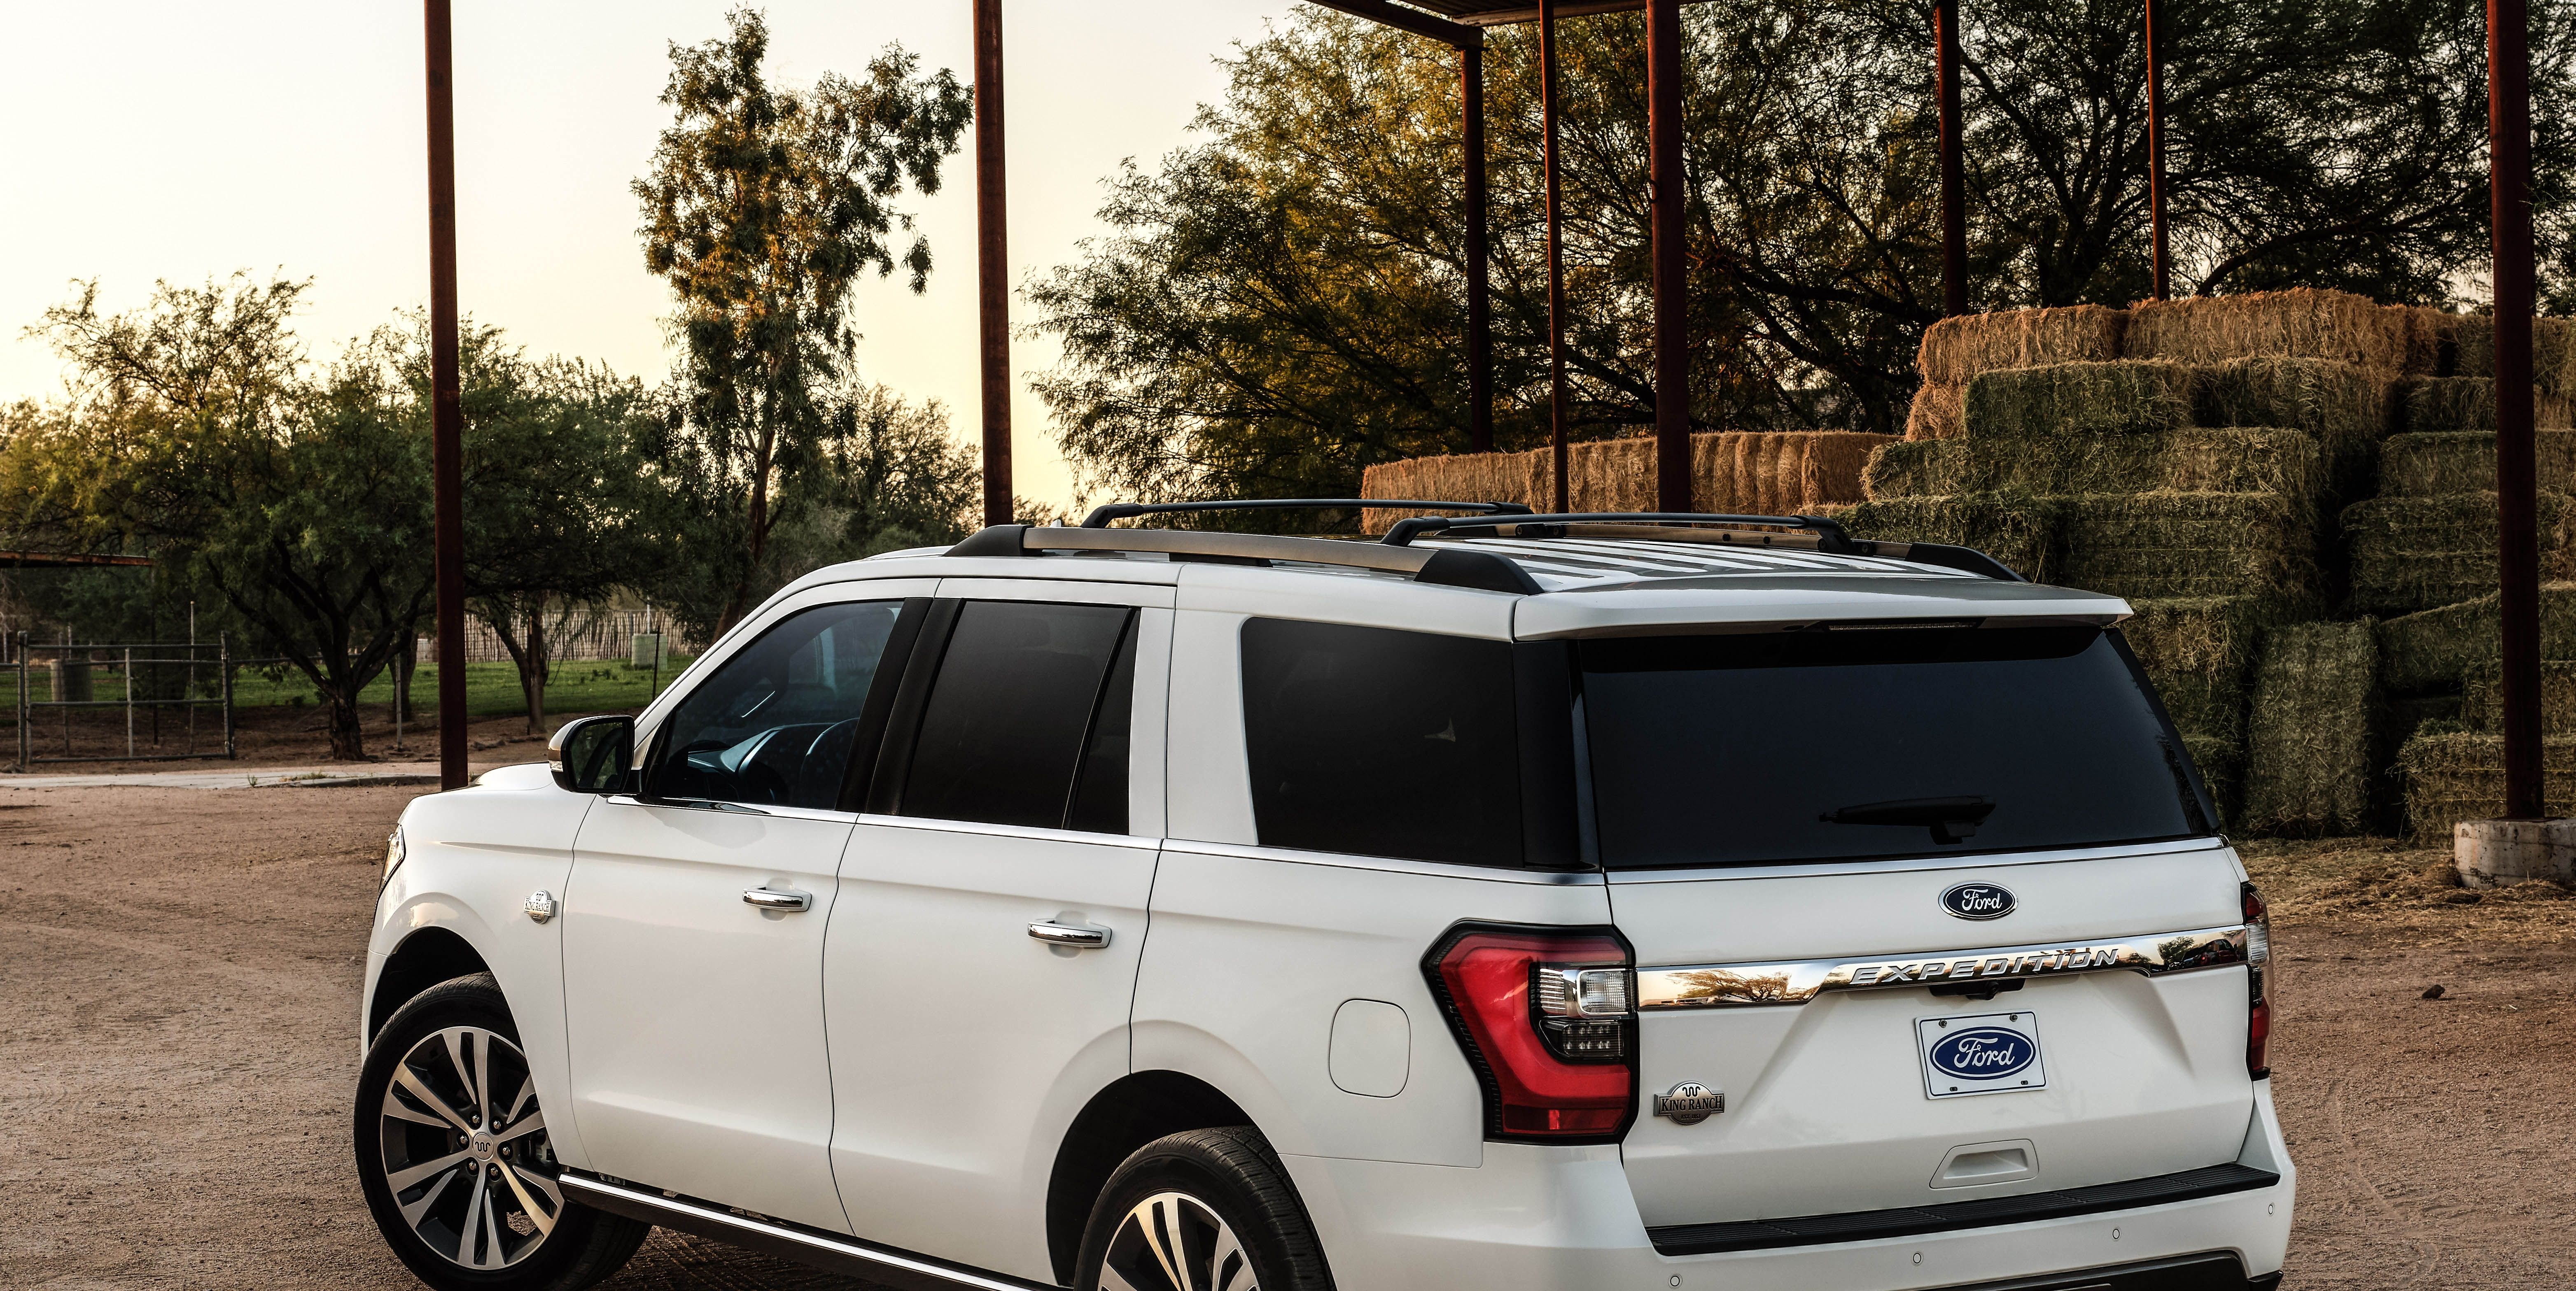 2020 Ford Expedition Recalled for Malfunctioning Seatbelt Sensor